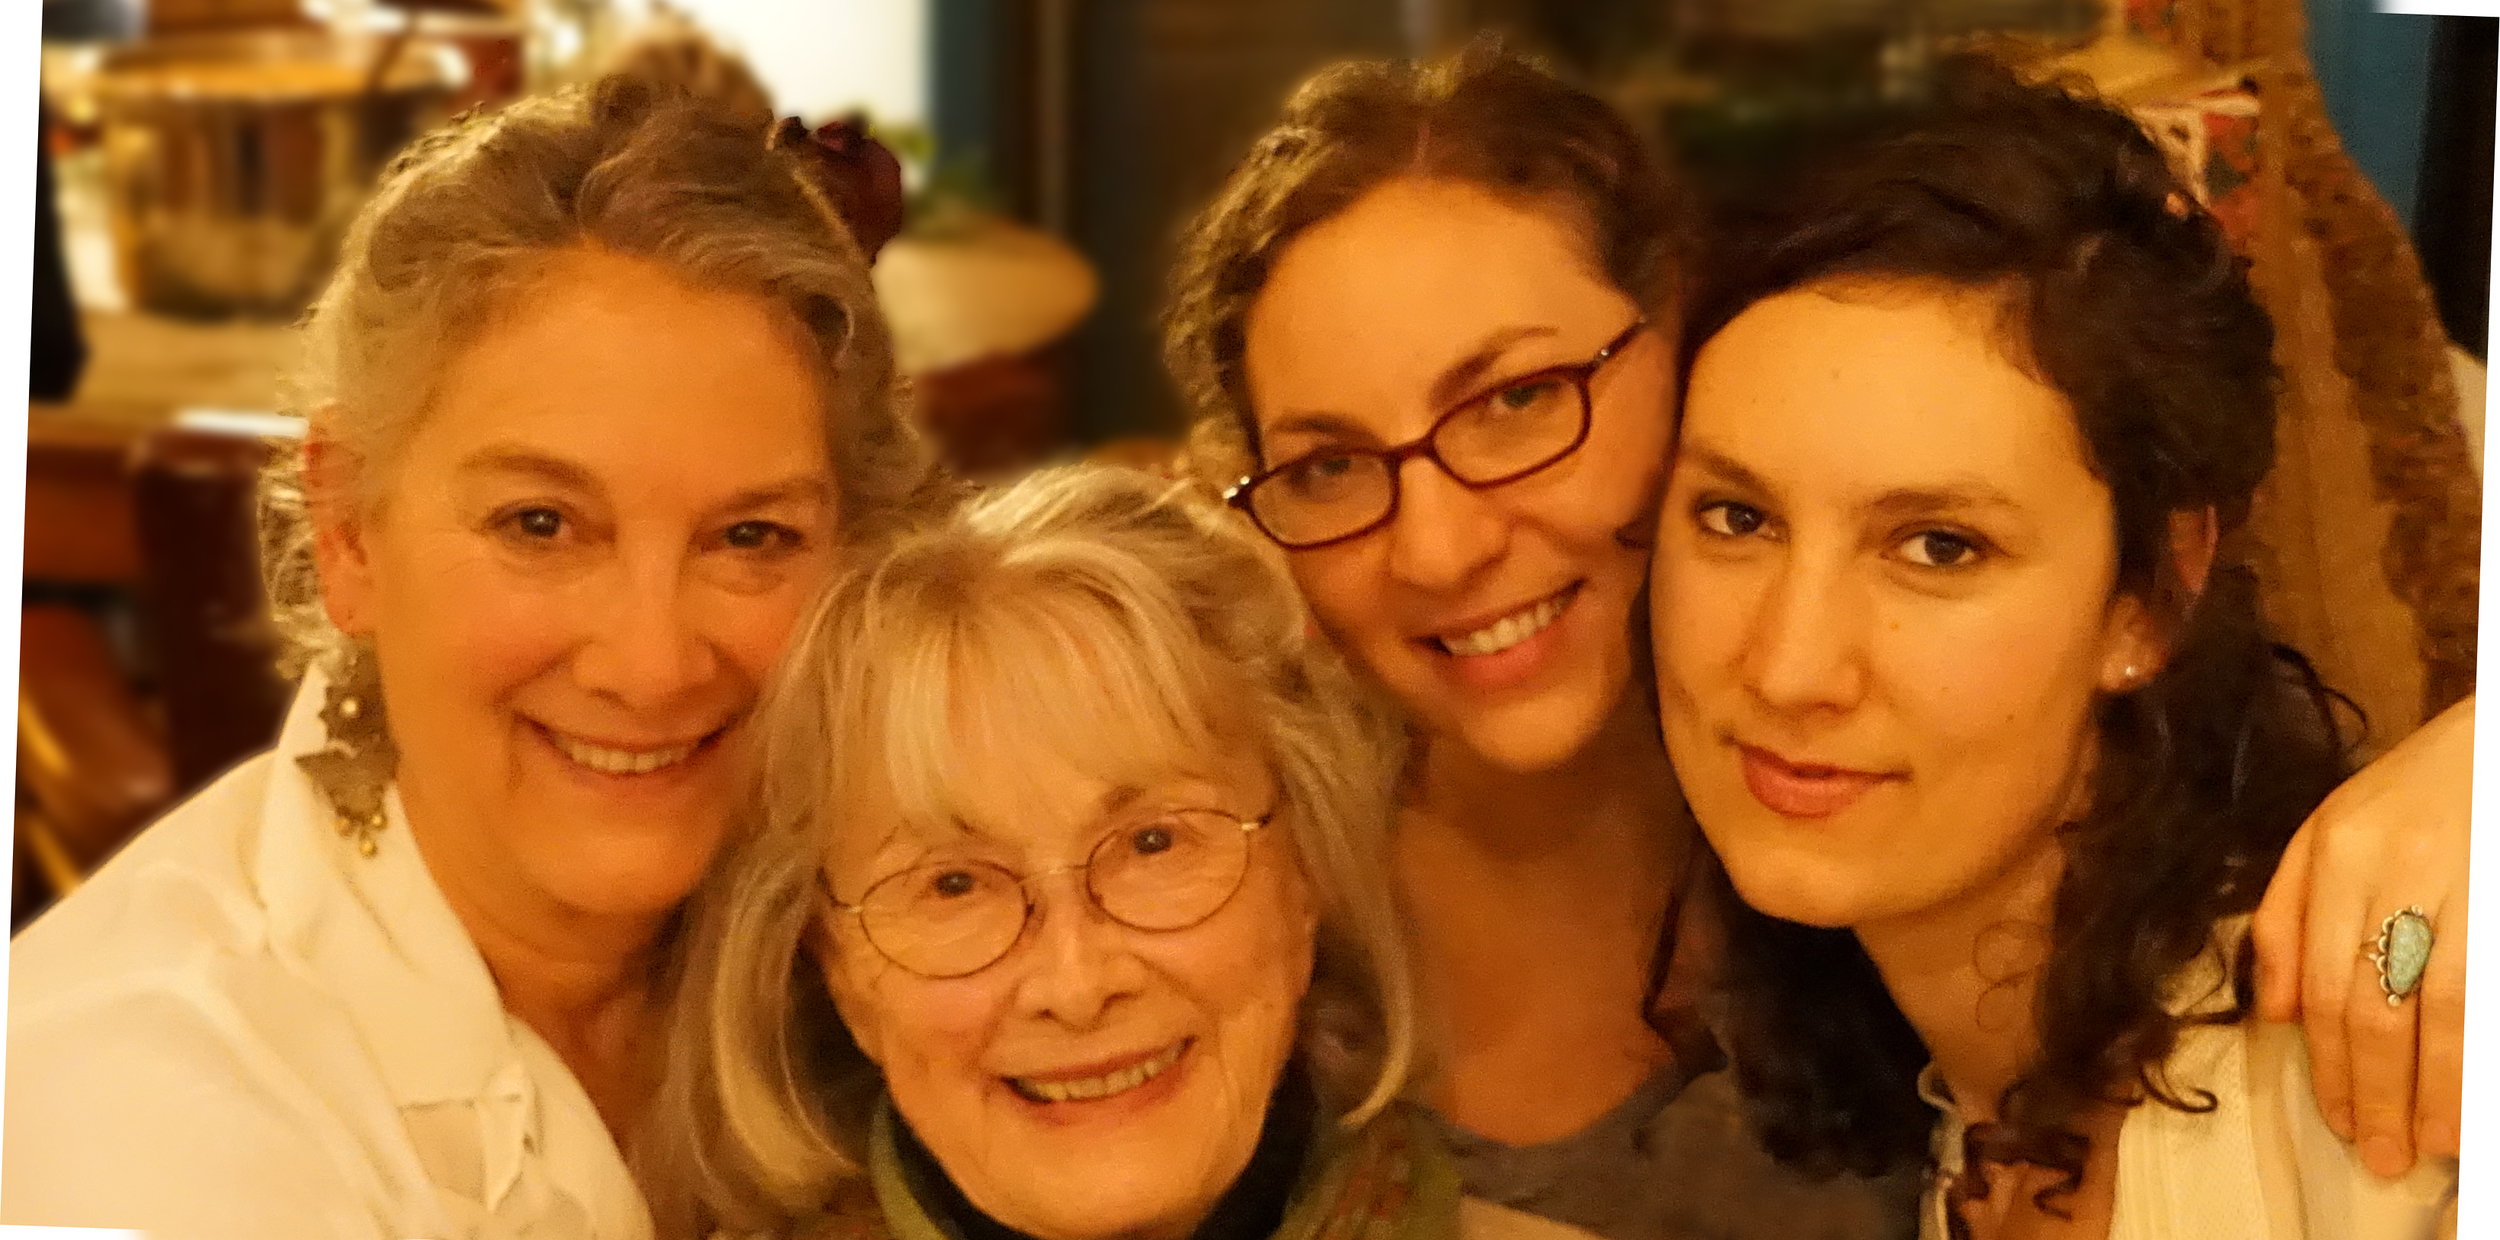 2014, Linda Wolf with her mother, poet, Barbara Wolf, and daughters Genevieve Smeeth and Heather Wolf